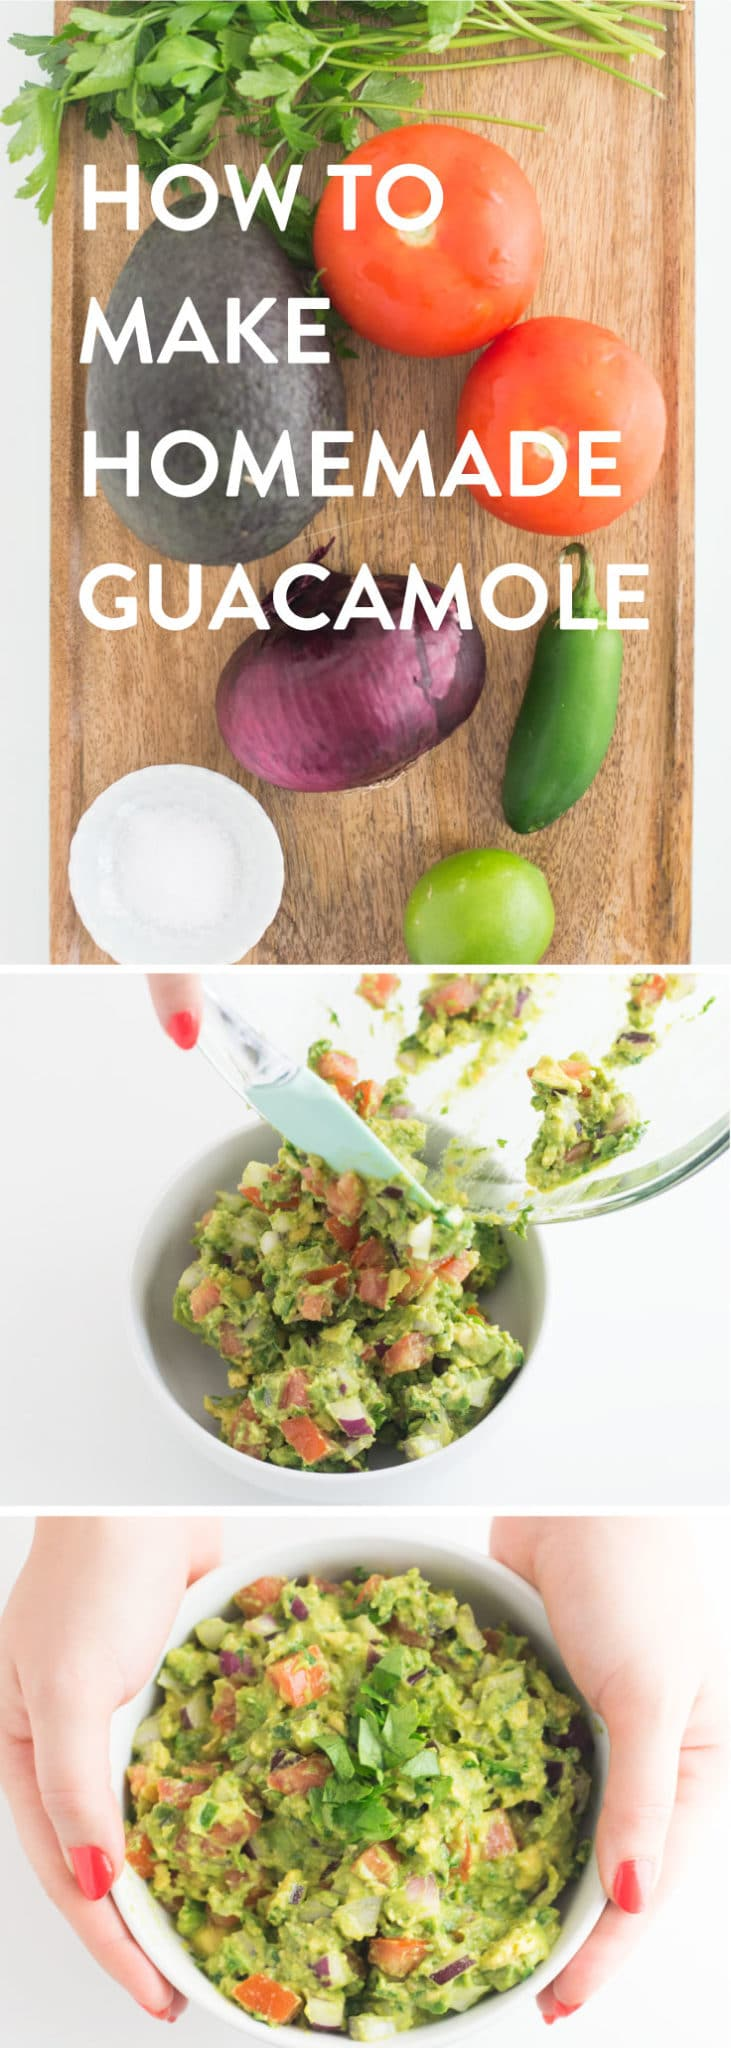 How To Make Easy Homemade Guacamole -- This easy guacamole recipe is so delicious and versatile. Loaded with fresh avocados, tomatoes, onions, and a hint of jalapeños, lime juice, and salt. You won't believe how easy it is to make a delicious guacamole recipe! #guacamole #vegan #vegetarian #healthysnack #keto #whole30 #paleo #glutenfree - mindfulavocado